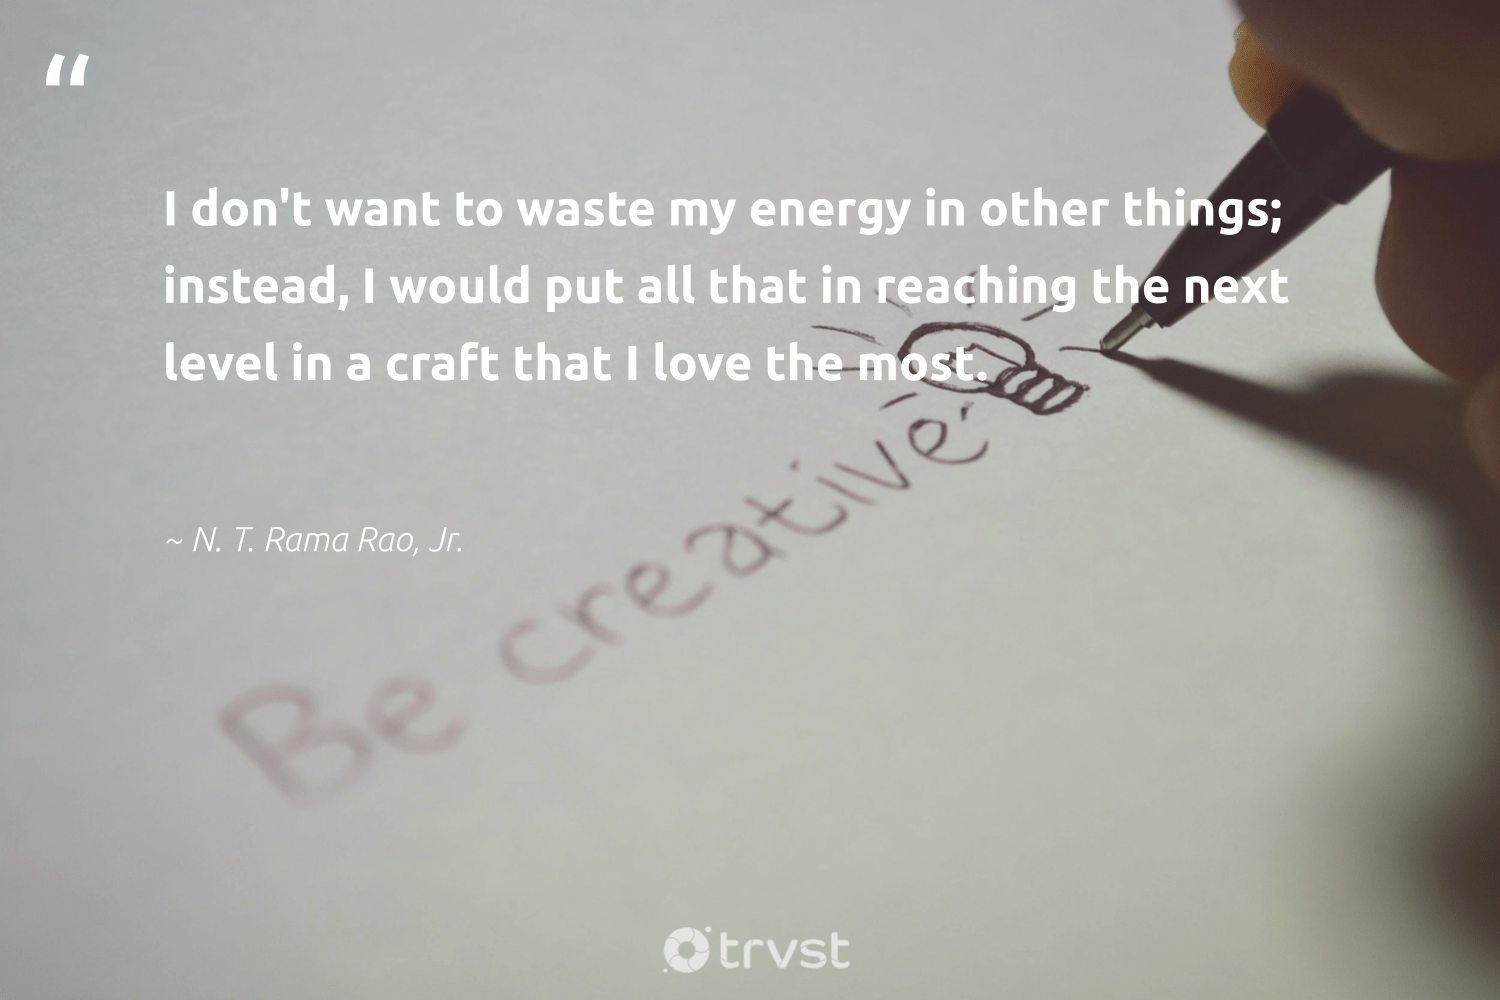 """""""I don't want to waste my energy in other things; instead, I would put all that in reaching the next level in a craft that I love the most.""""  - N. T. Rama Rao, Jr. #trvst #quotes #love #waste #energy #makeadifference #impact #weareallone #changetheworld #betterplanet #planetearthfirst #ethicalbusiness"""